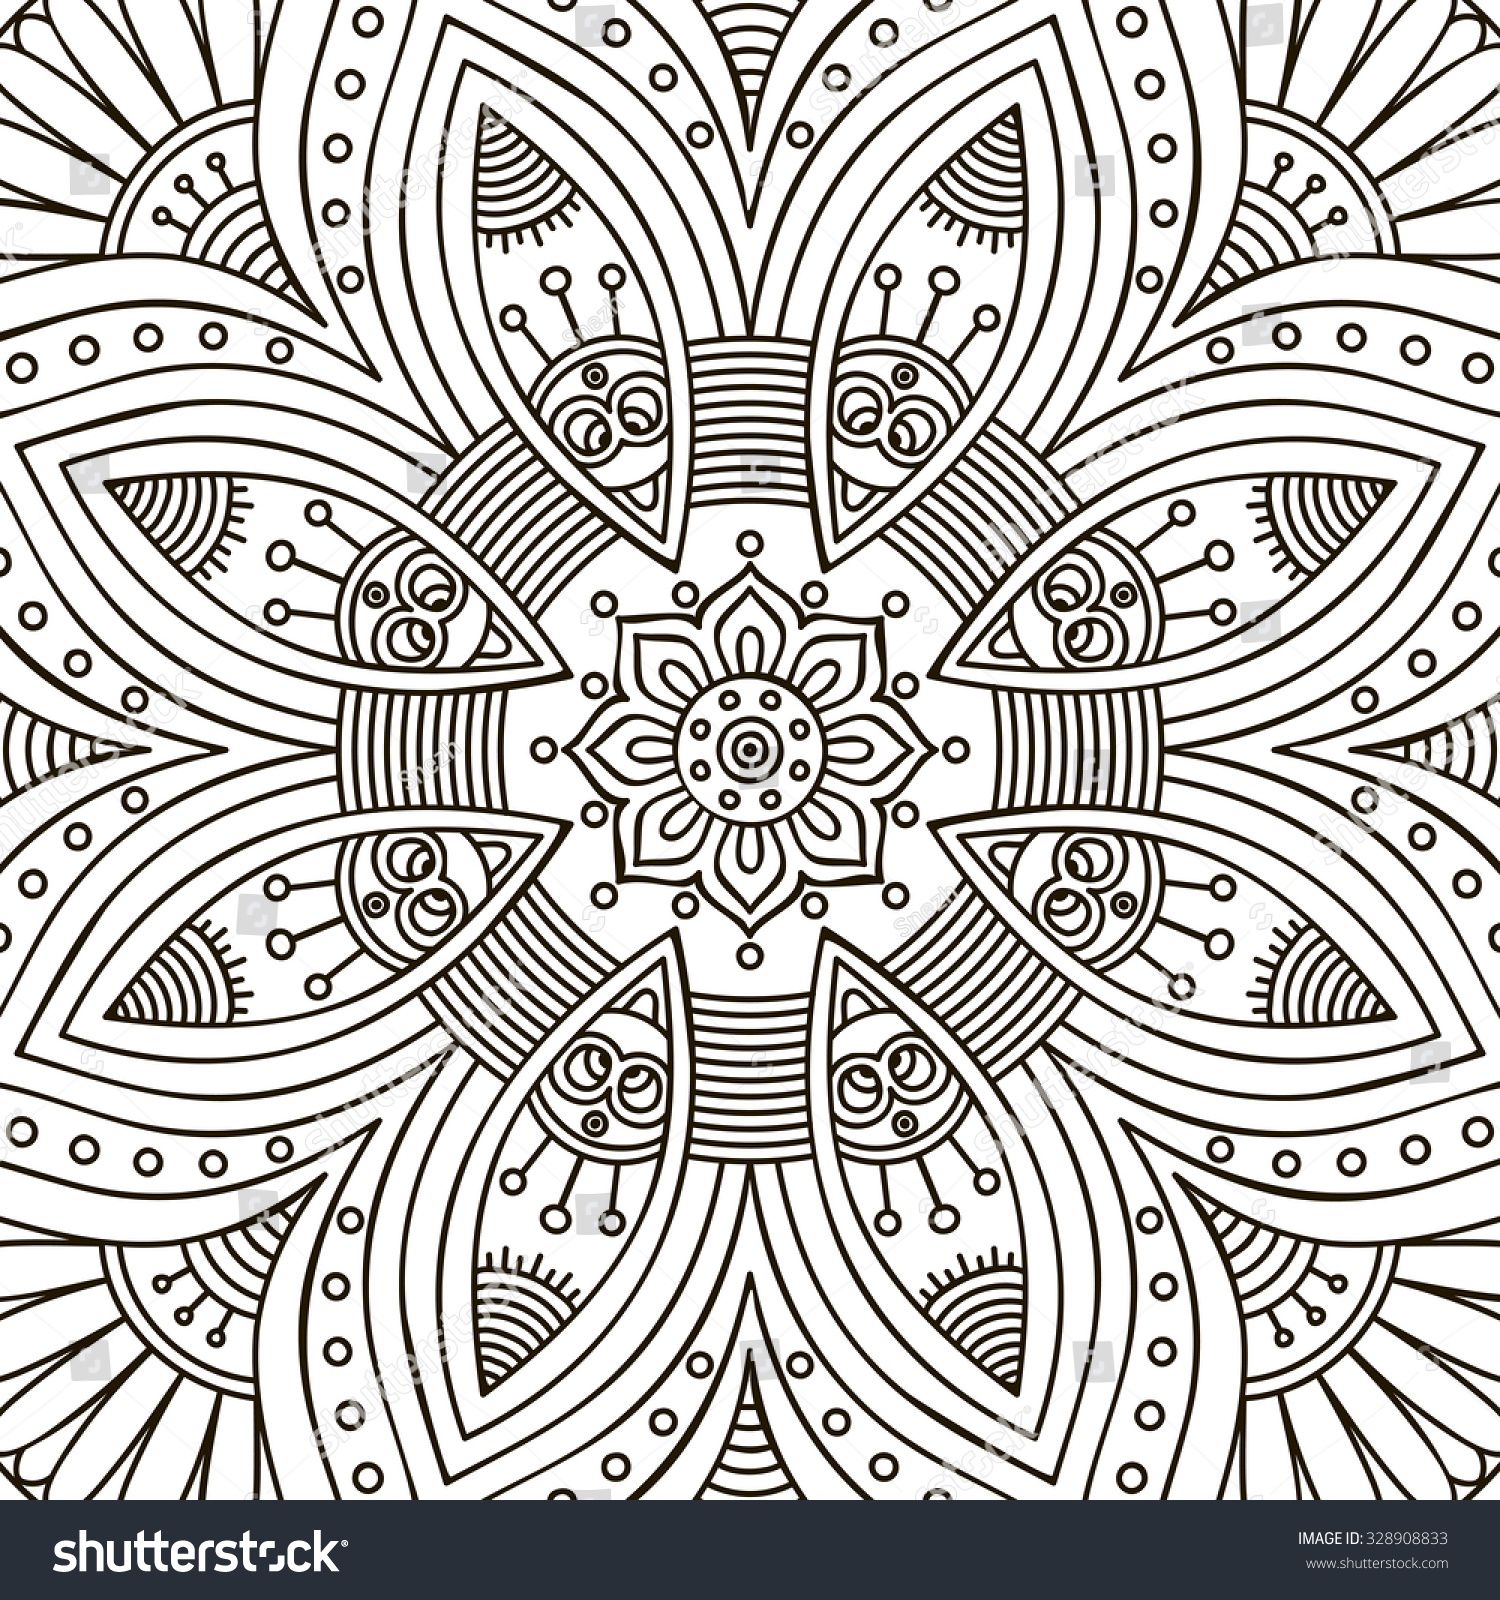 Chinese mandala coloring pages - Mandala Coloring Page Vintage Decorative Elements Oriental Pattern Vector Illustration Islam Arabic Indian Turkish Pakistan Chinese